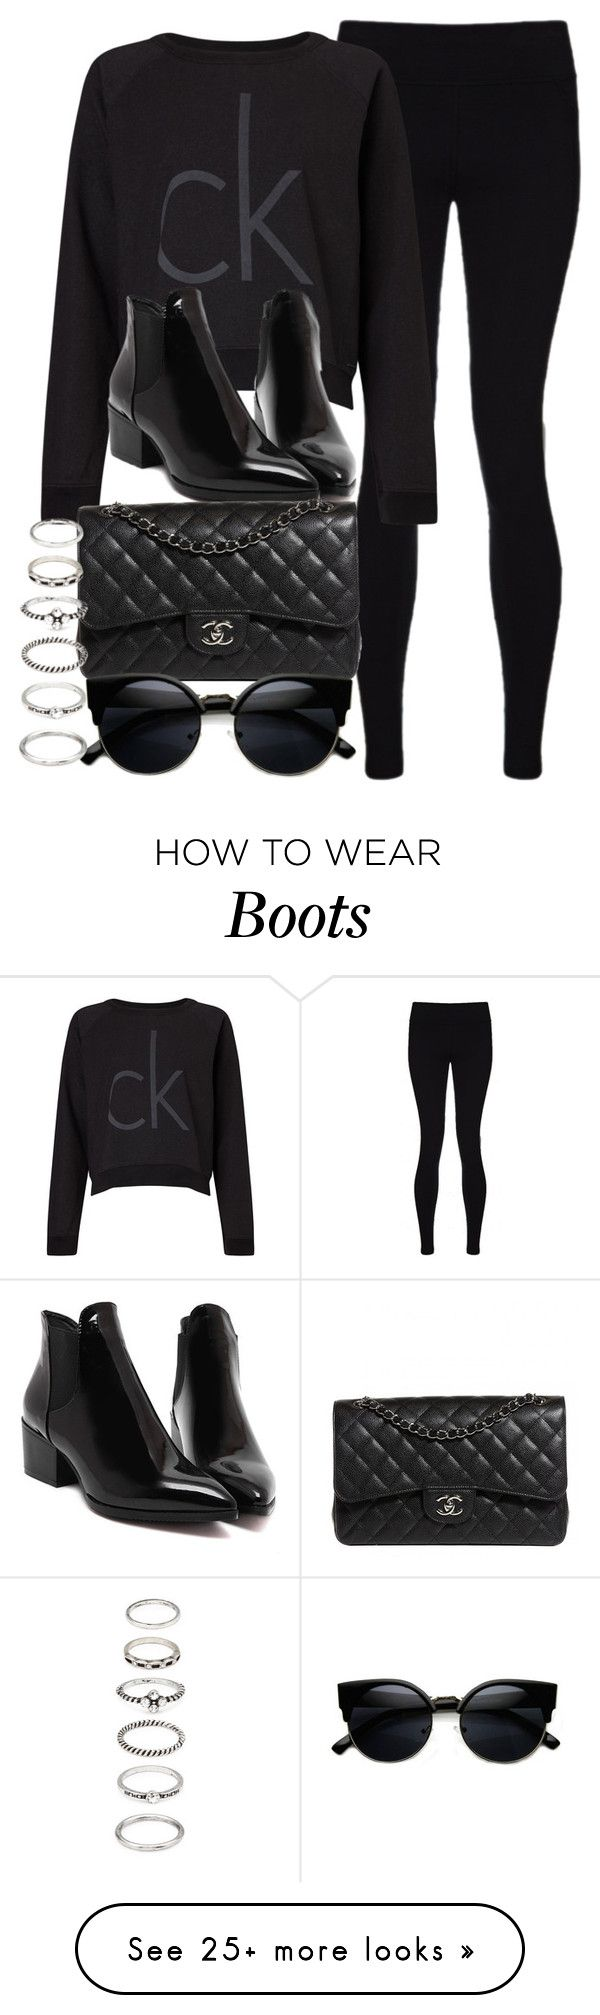 """Style #10614"" by vany-alvarado on Polyvore featuring Sweaty Betty, Calvin Klein, Chanel and Forever 21"